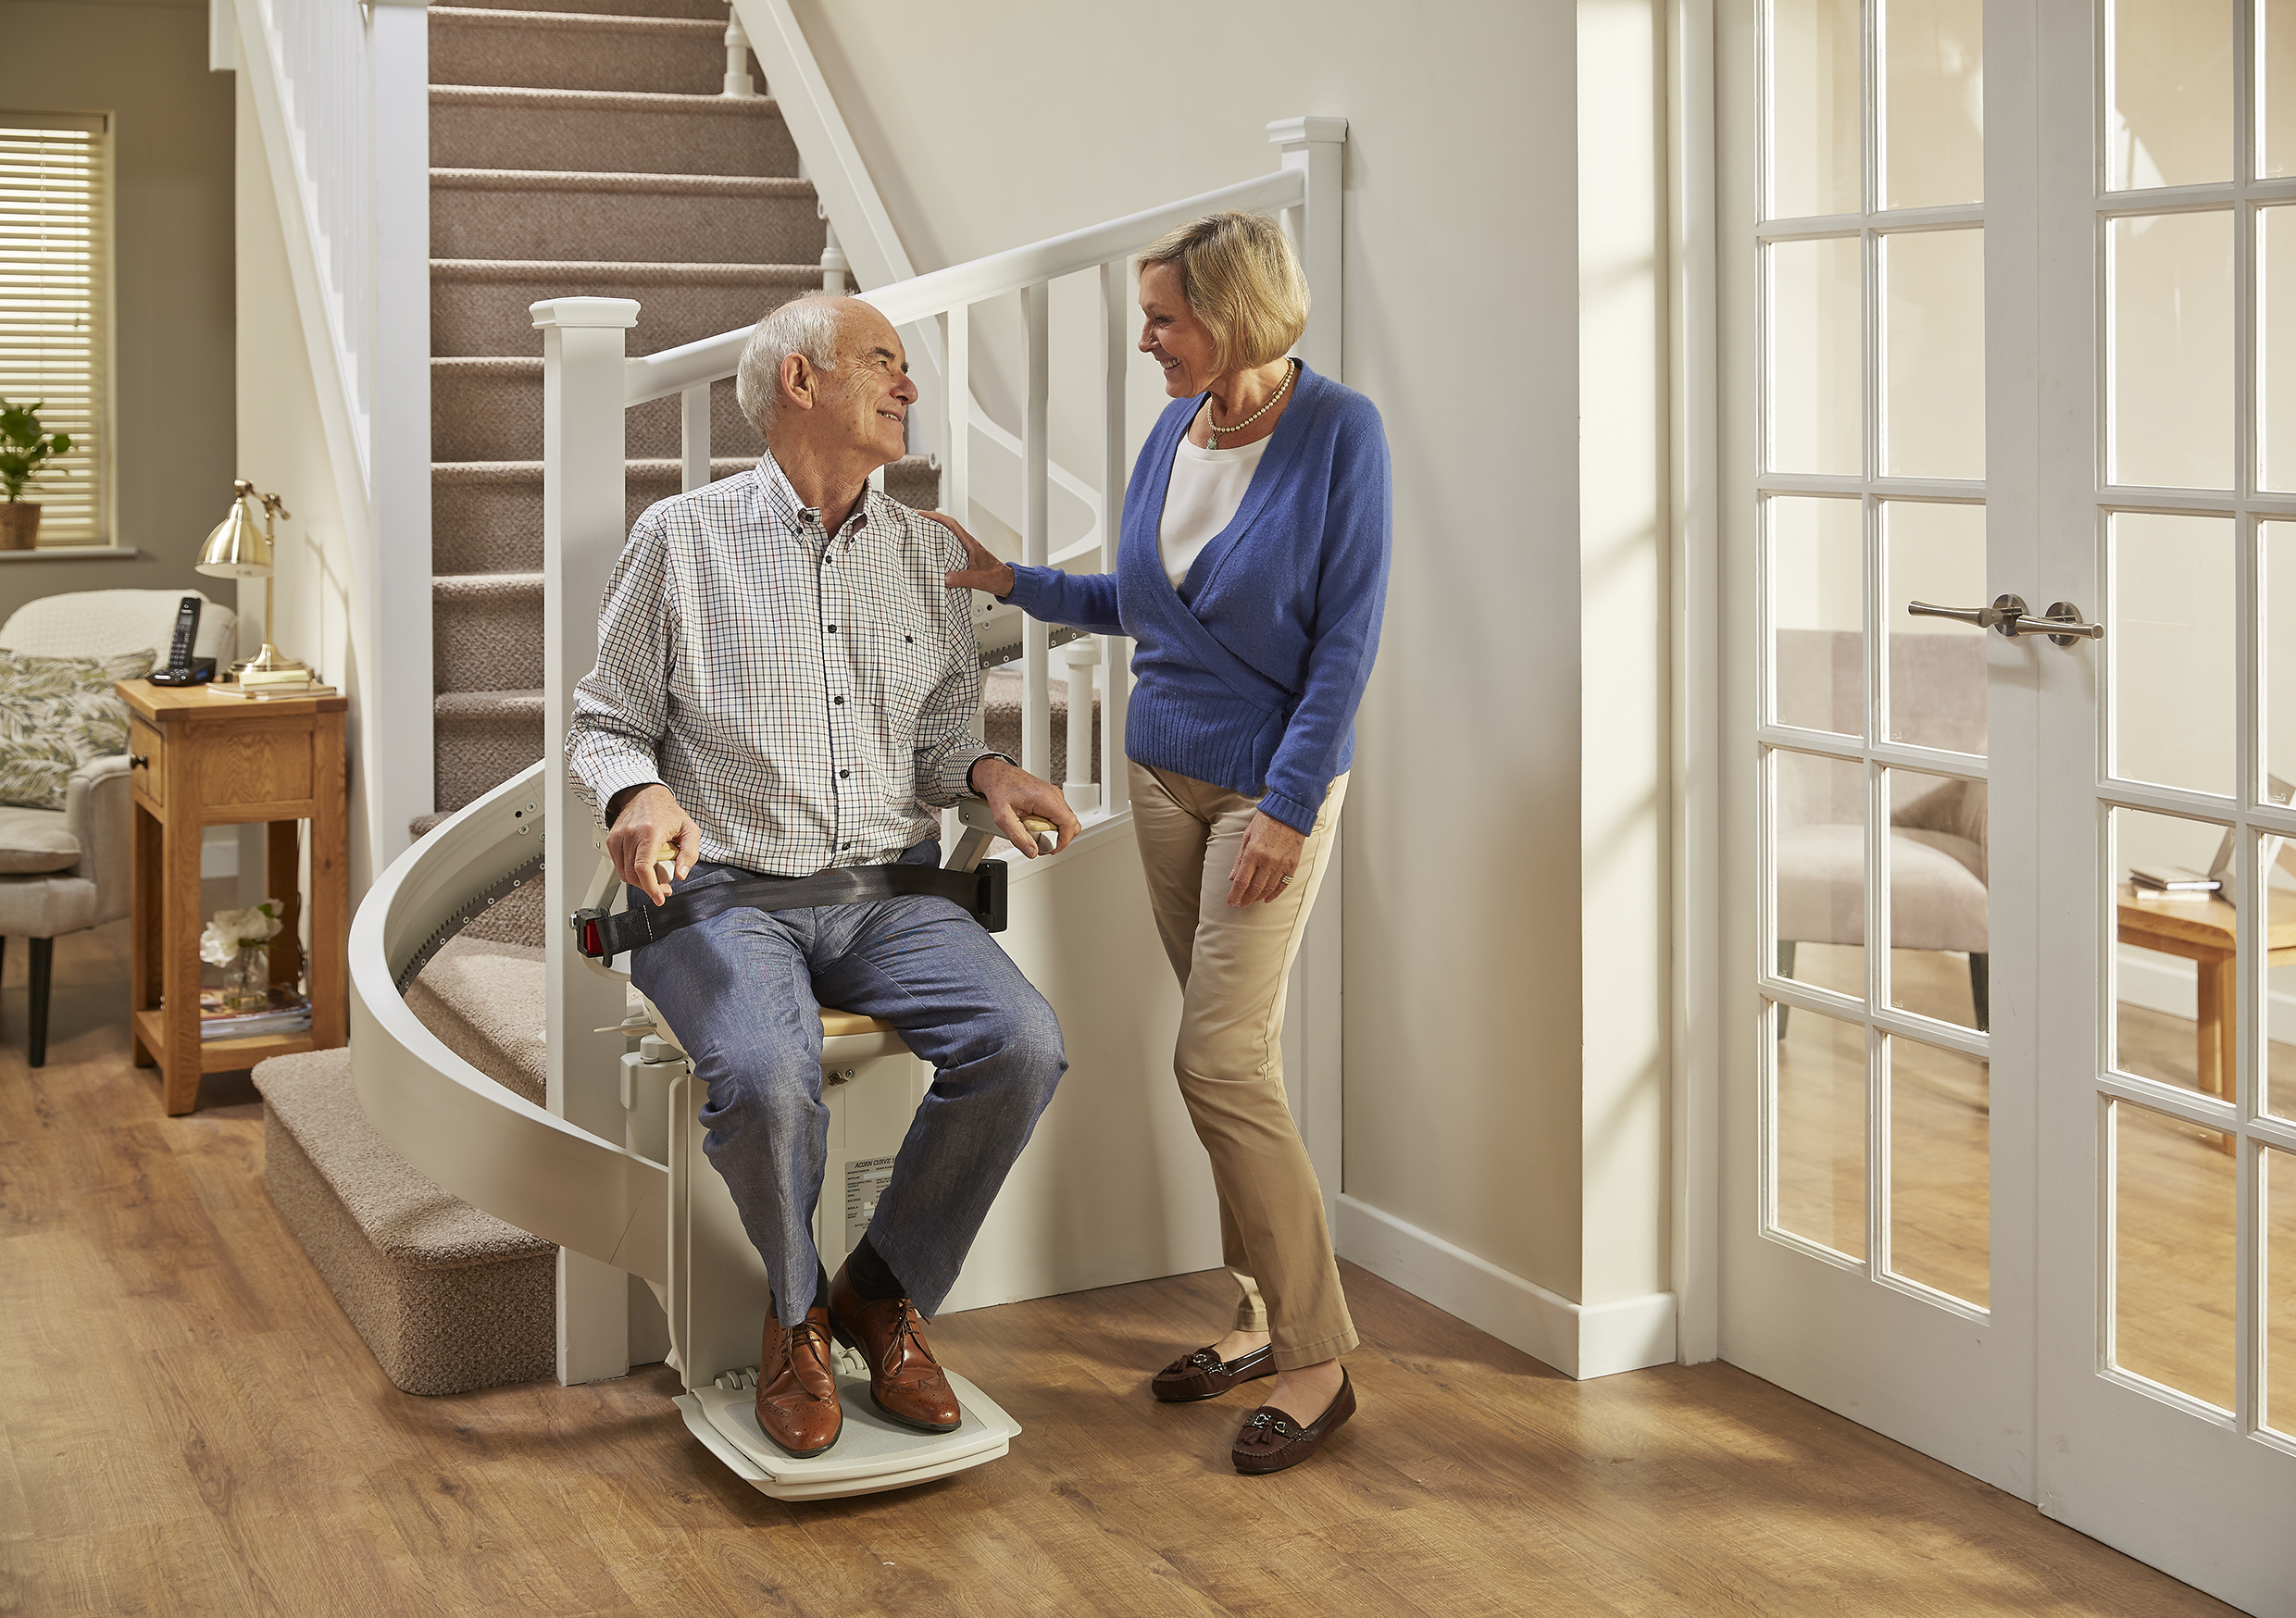 Image of Dr Hilary with Curved Stairlift